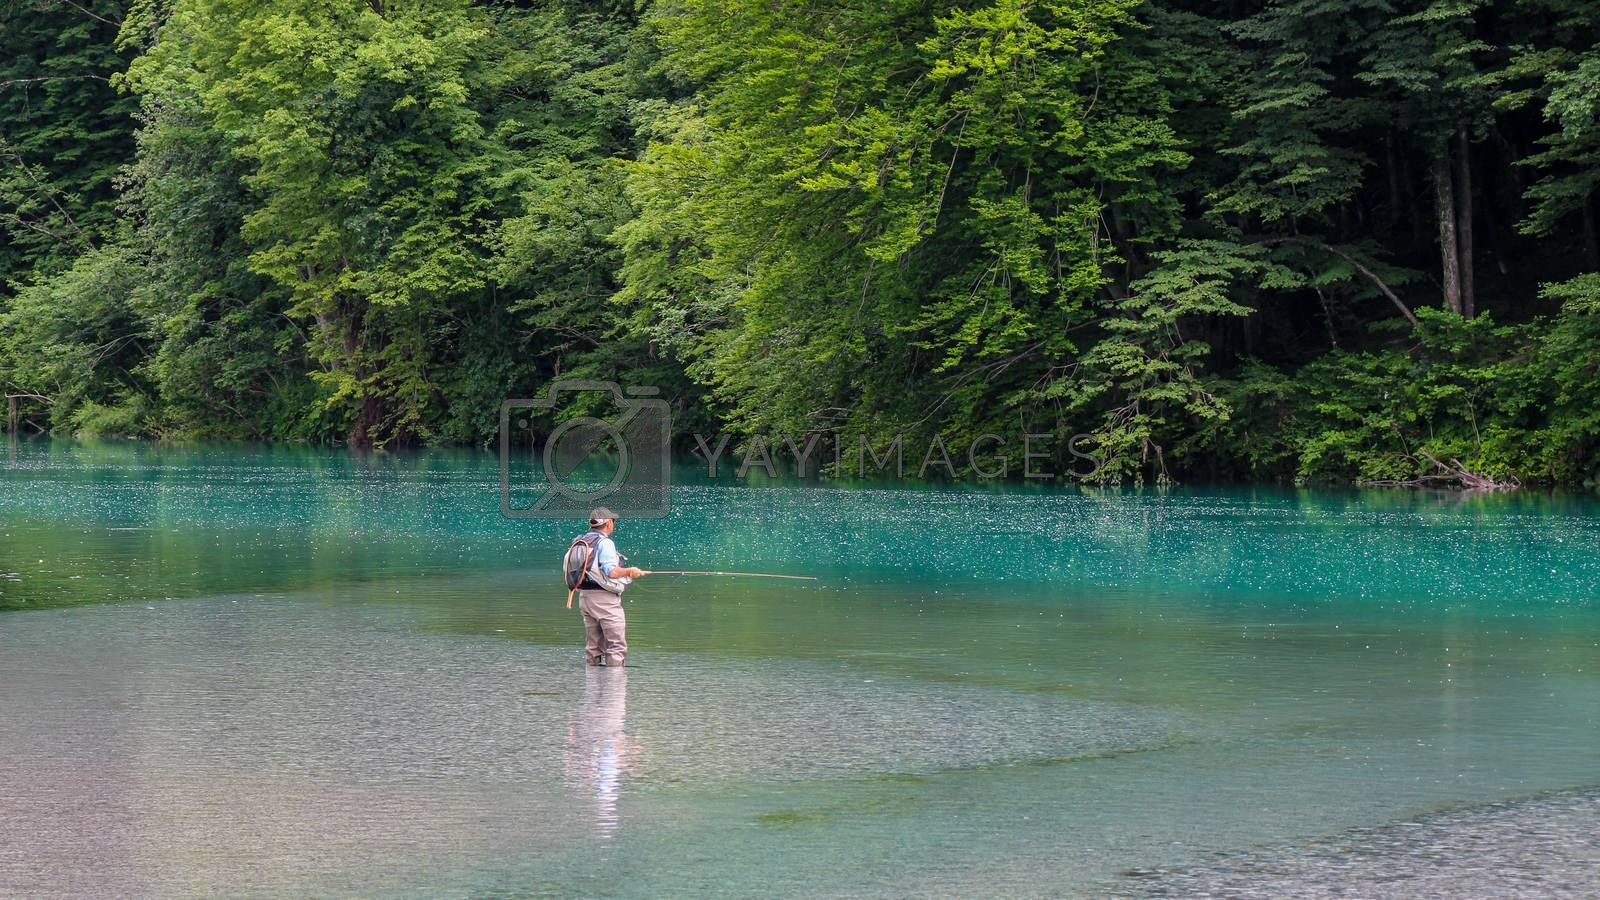 Tolmin, Slovenia - July 18th 2018: A man fly fishing for marble trout on the Soca River at the Tolminka confluence, near Tolmin, Slovenia